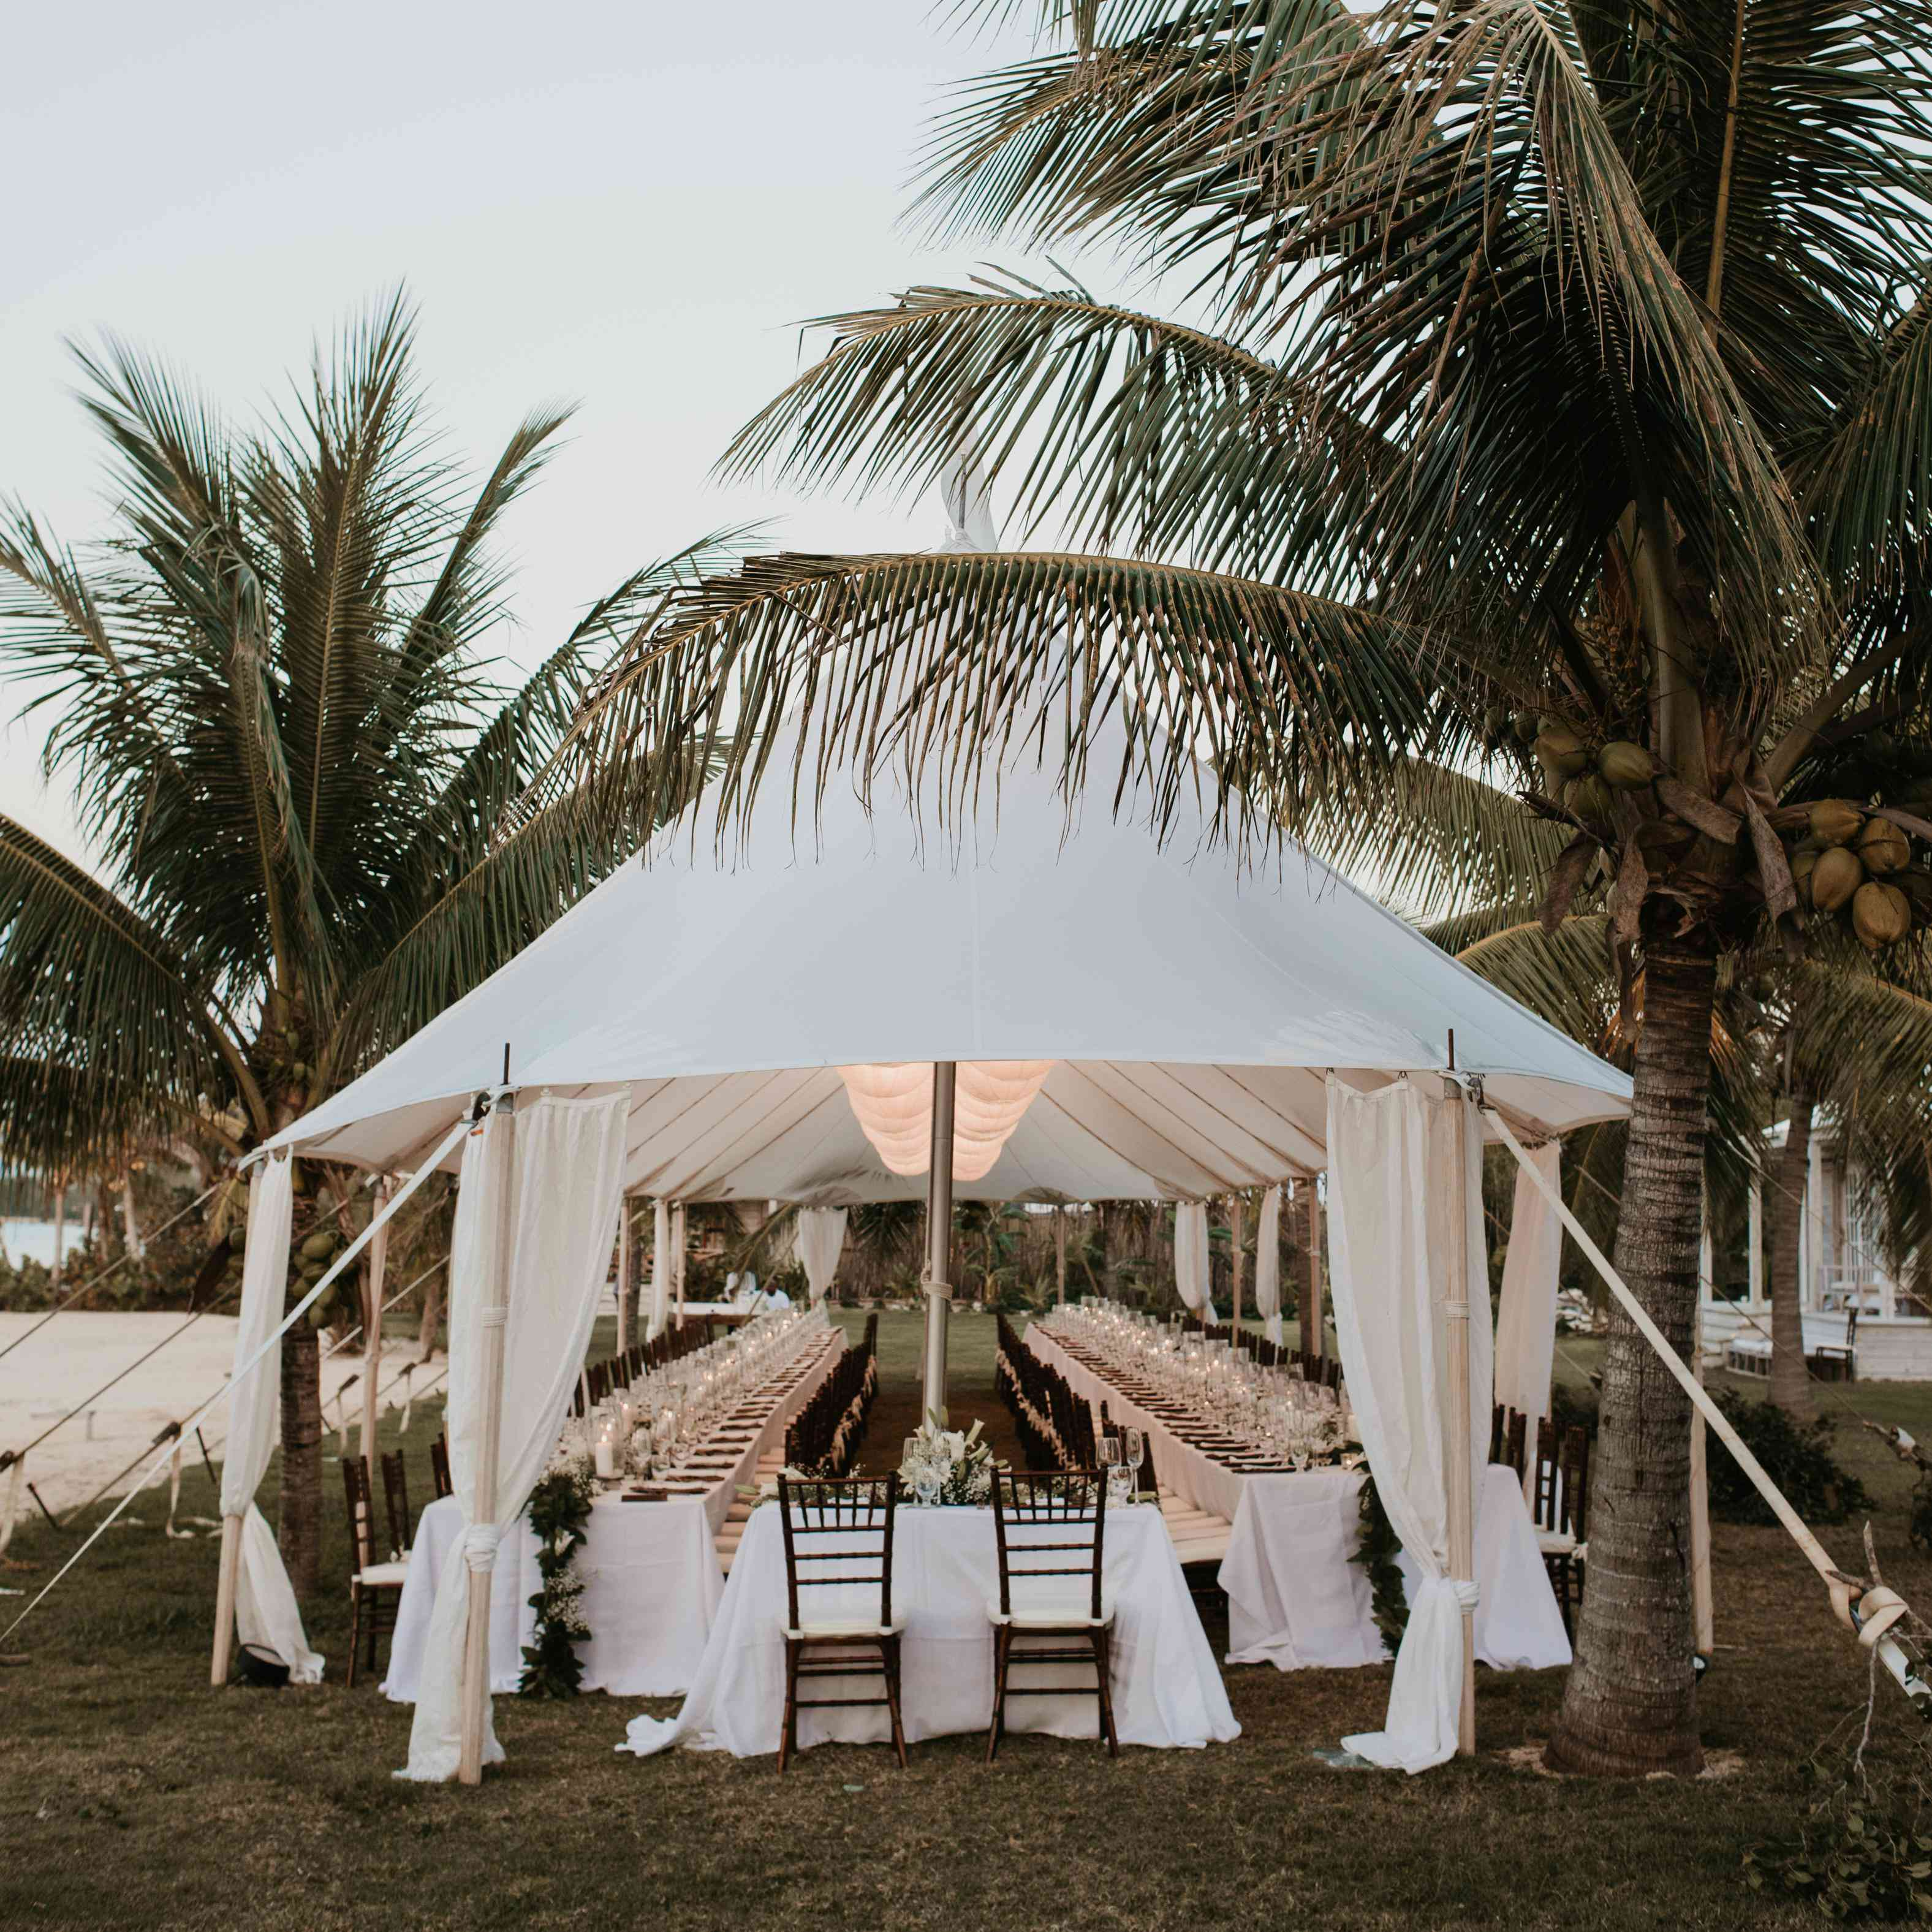 Outdoor Wedding Ceremony Tent: 25 Breathtaking Tents For Your Outdoor Wedding